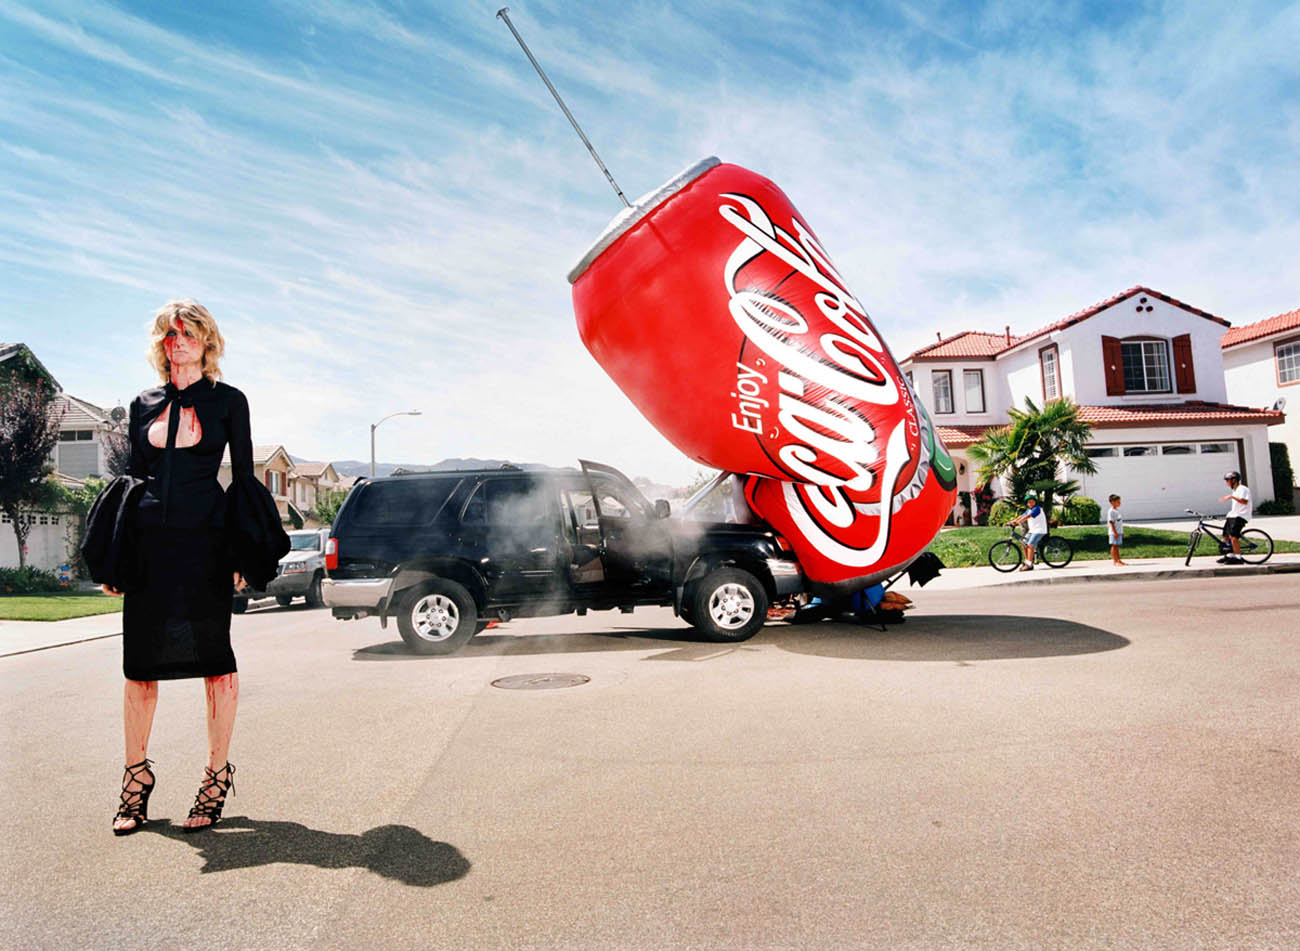 David LaChapelle, COKE-01